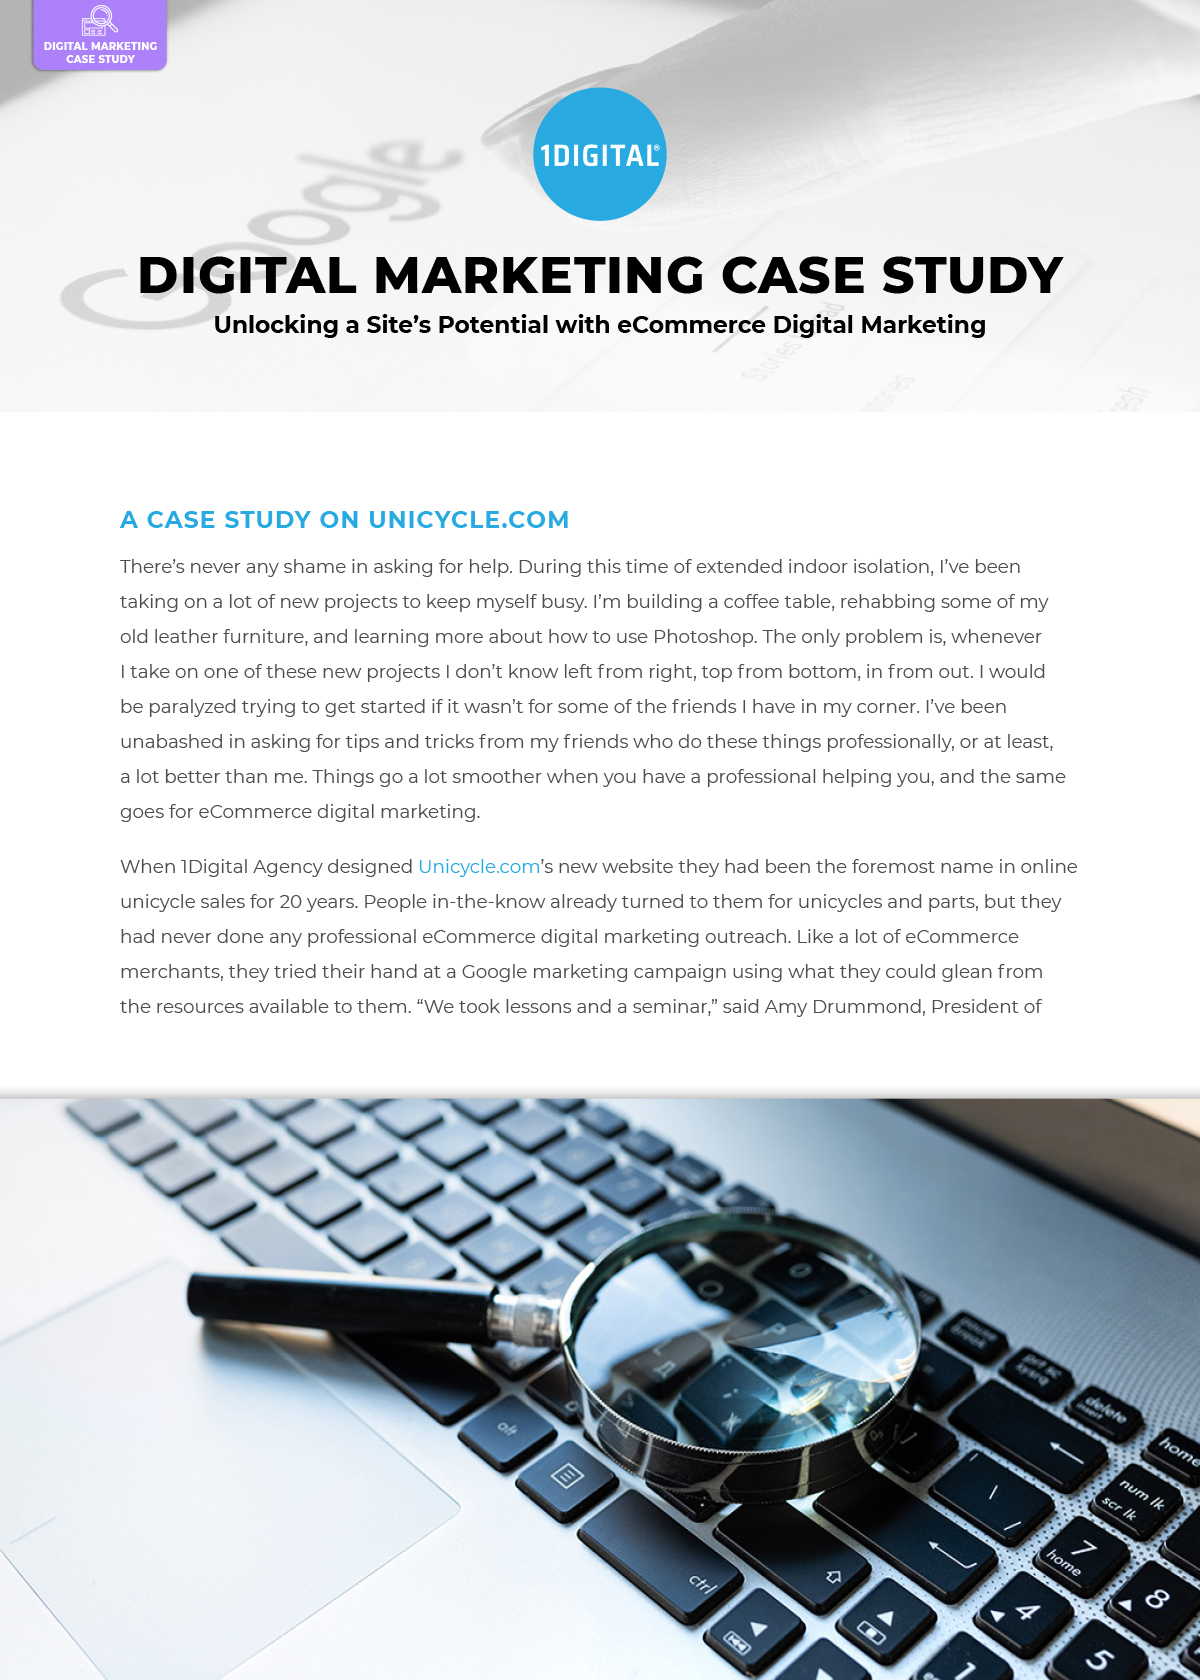 Unlocking a Site's Potential with eCommerce Digital Marketing